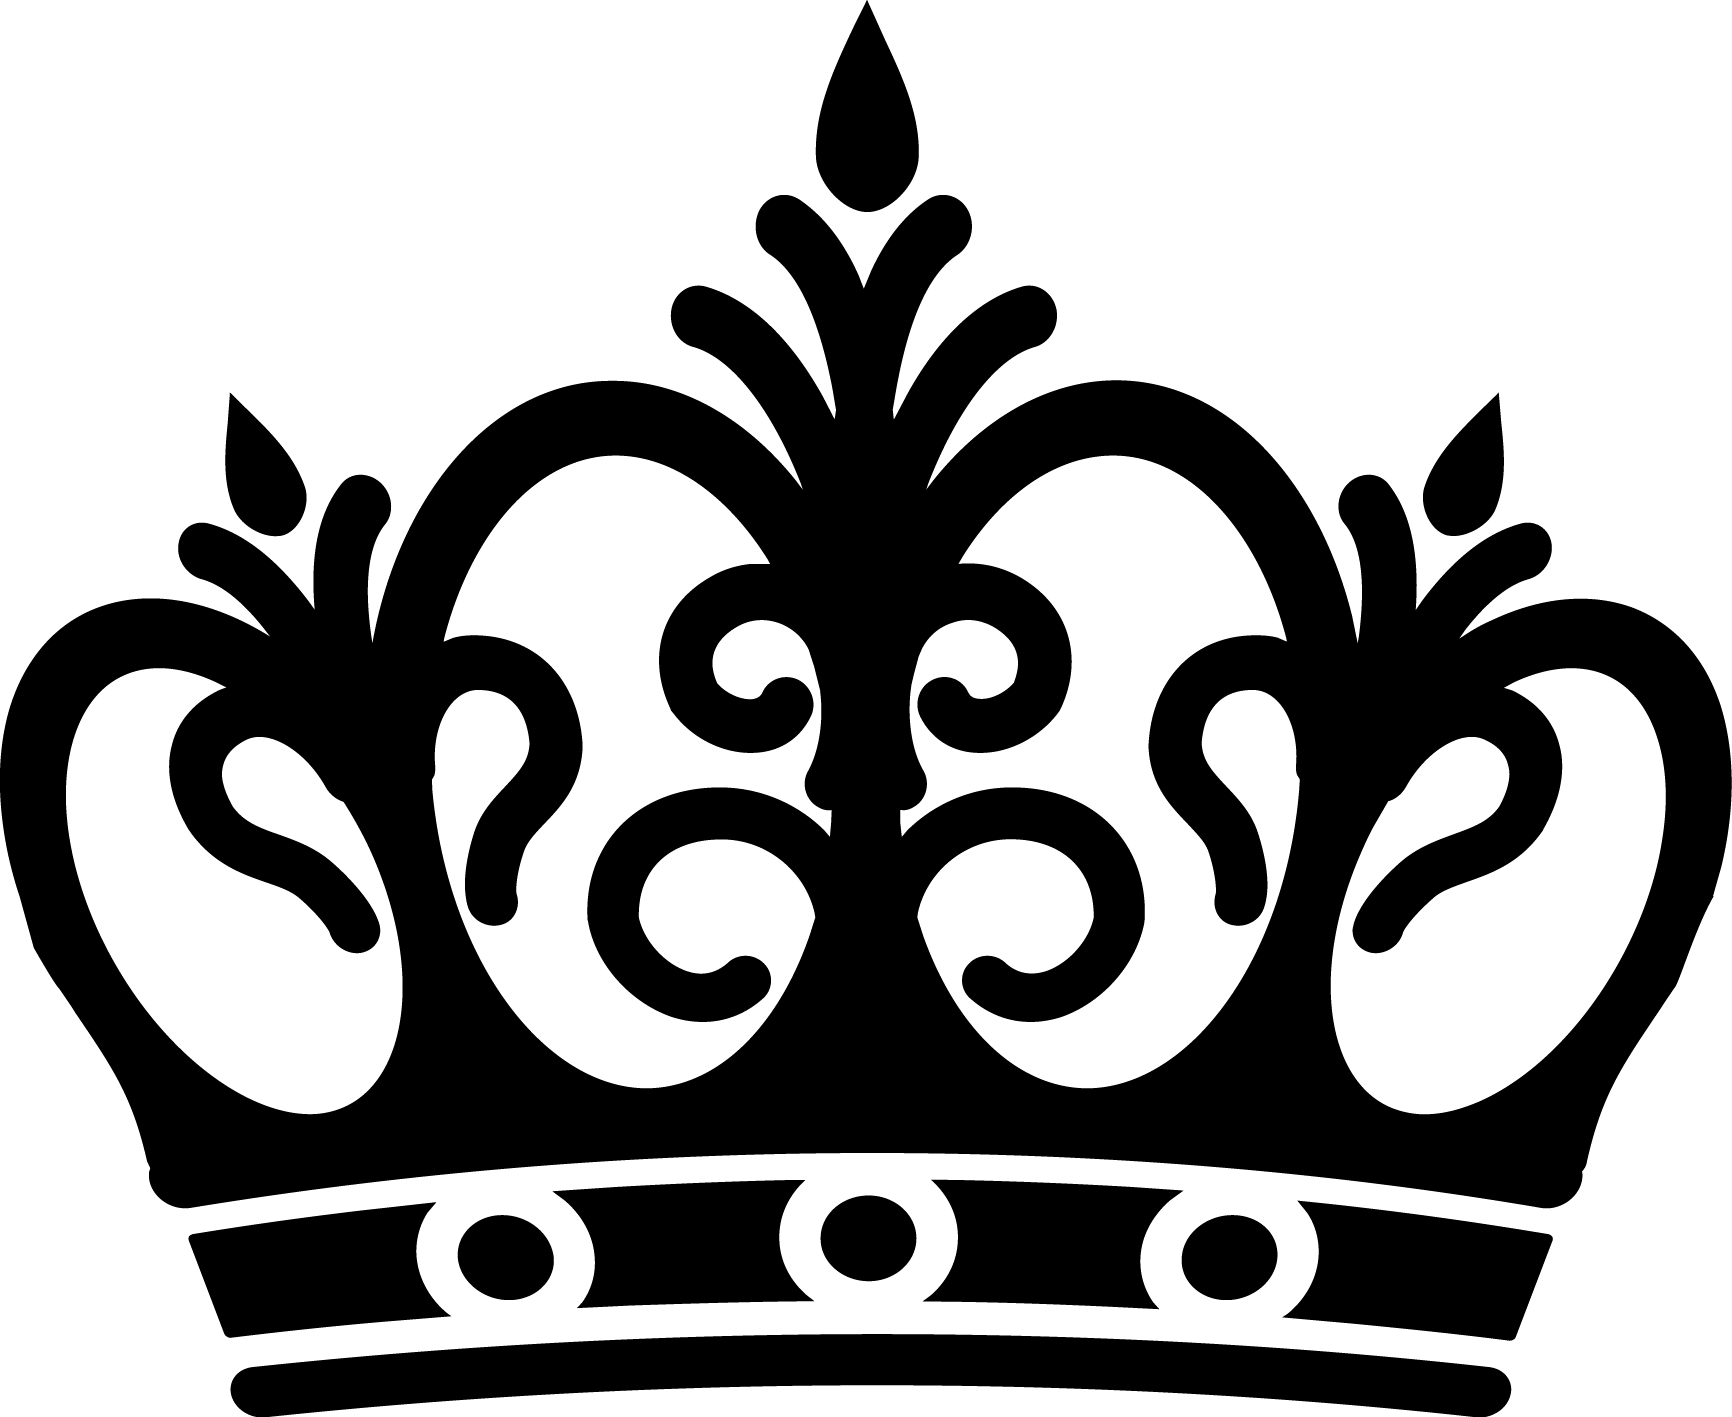 Crown clip art black and white. Medieval drawing at getdrawings